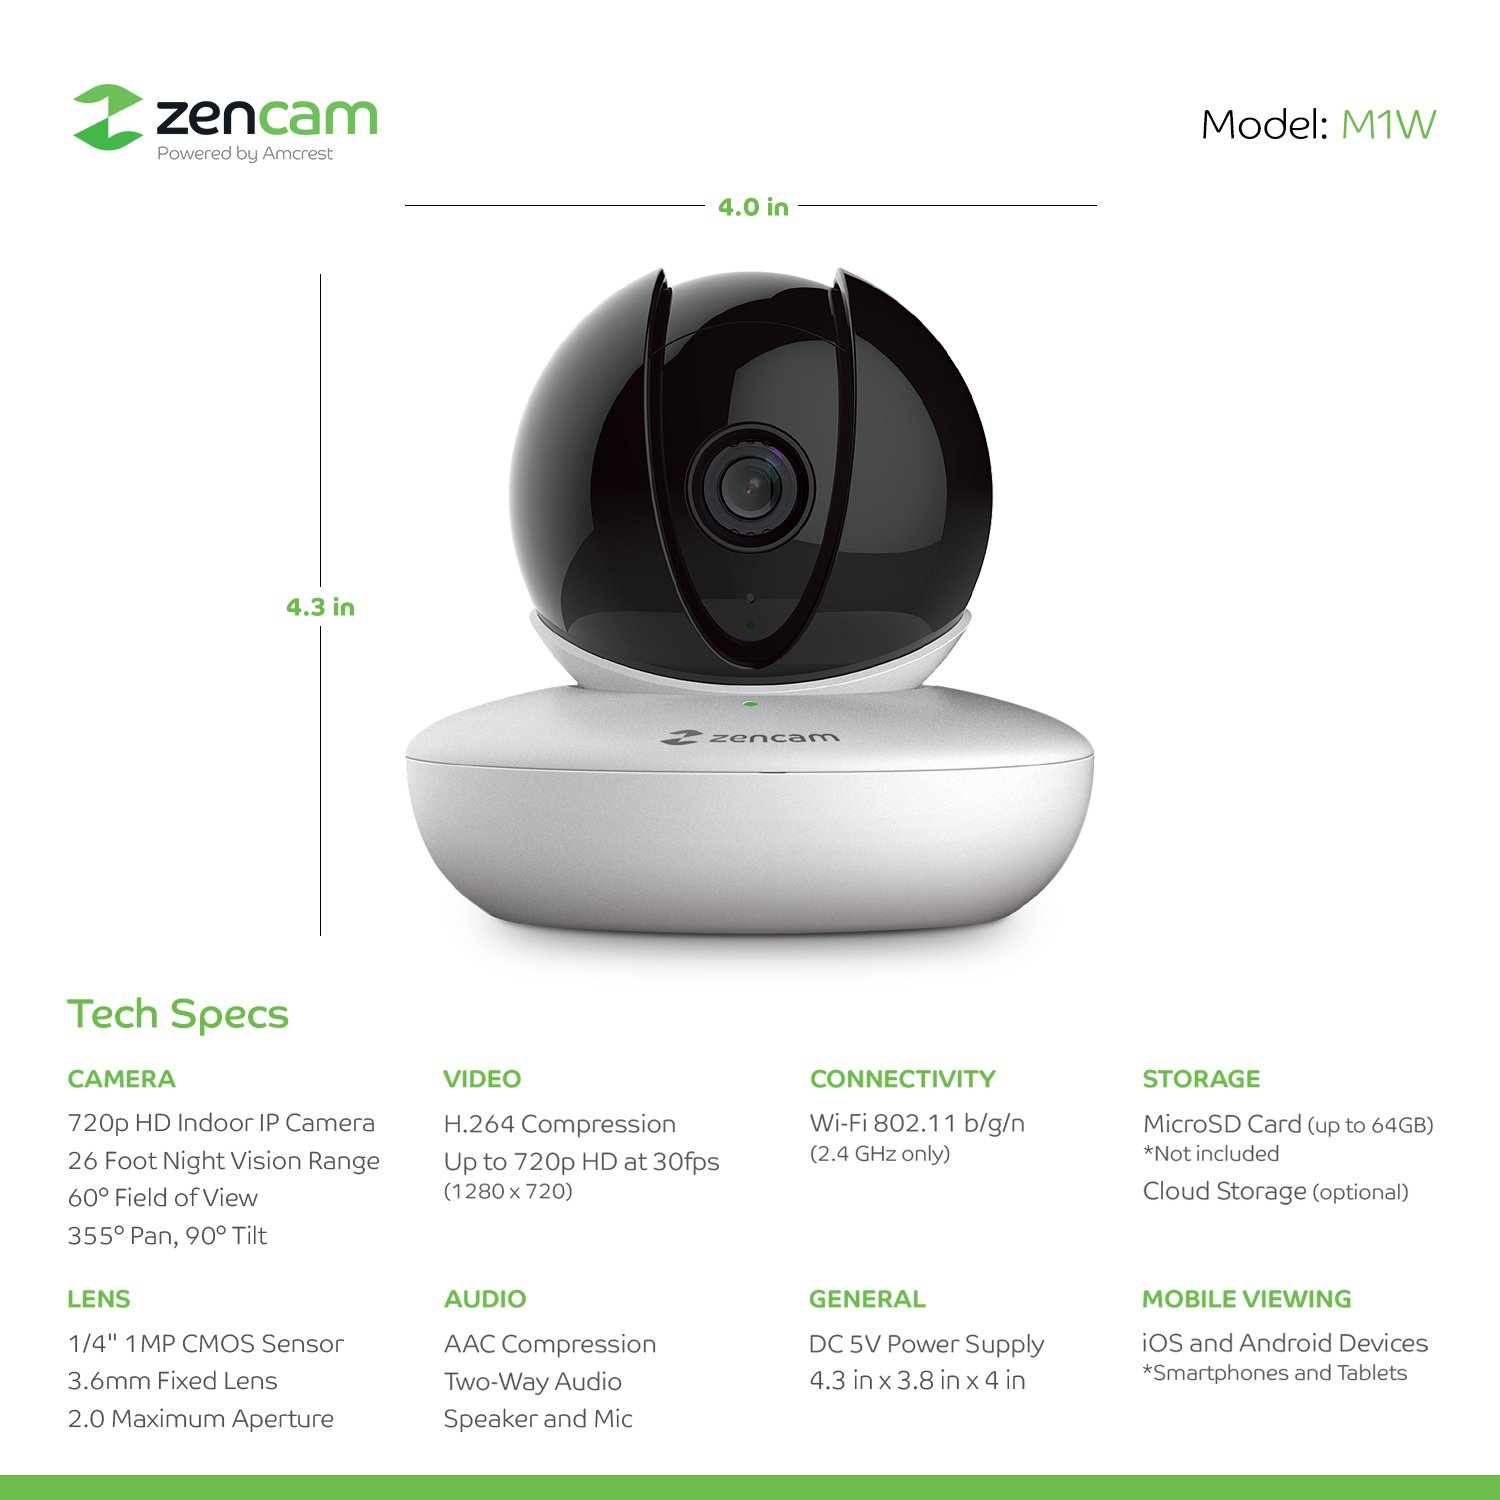 Zencam WiFi Camera MicroSD /& Cloud Storage Two Way Talk M2W-V2 Updated Firmware, 2018 White 1080p HD Indoor Pan Tilt Digital Zoom Wireless IP Security System with Night Vision 2.4Ghz Only